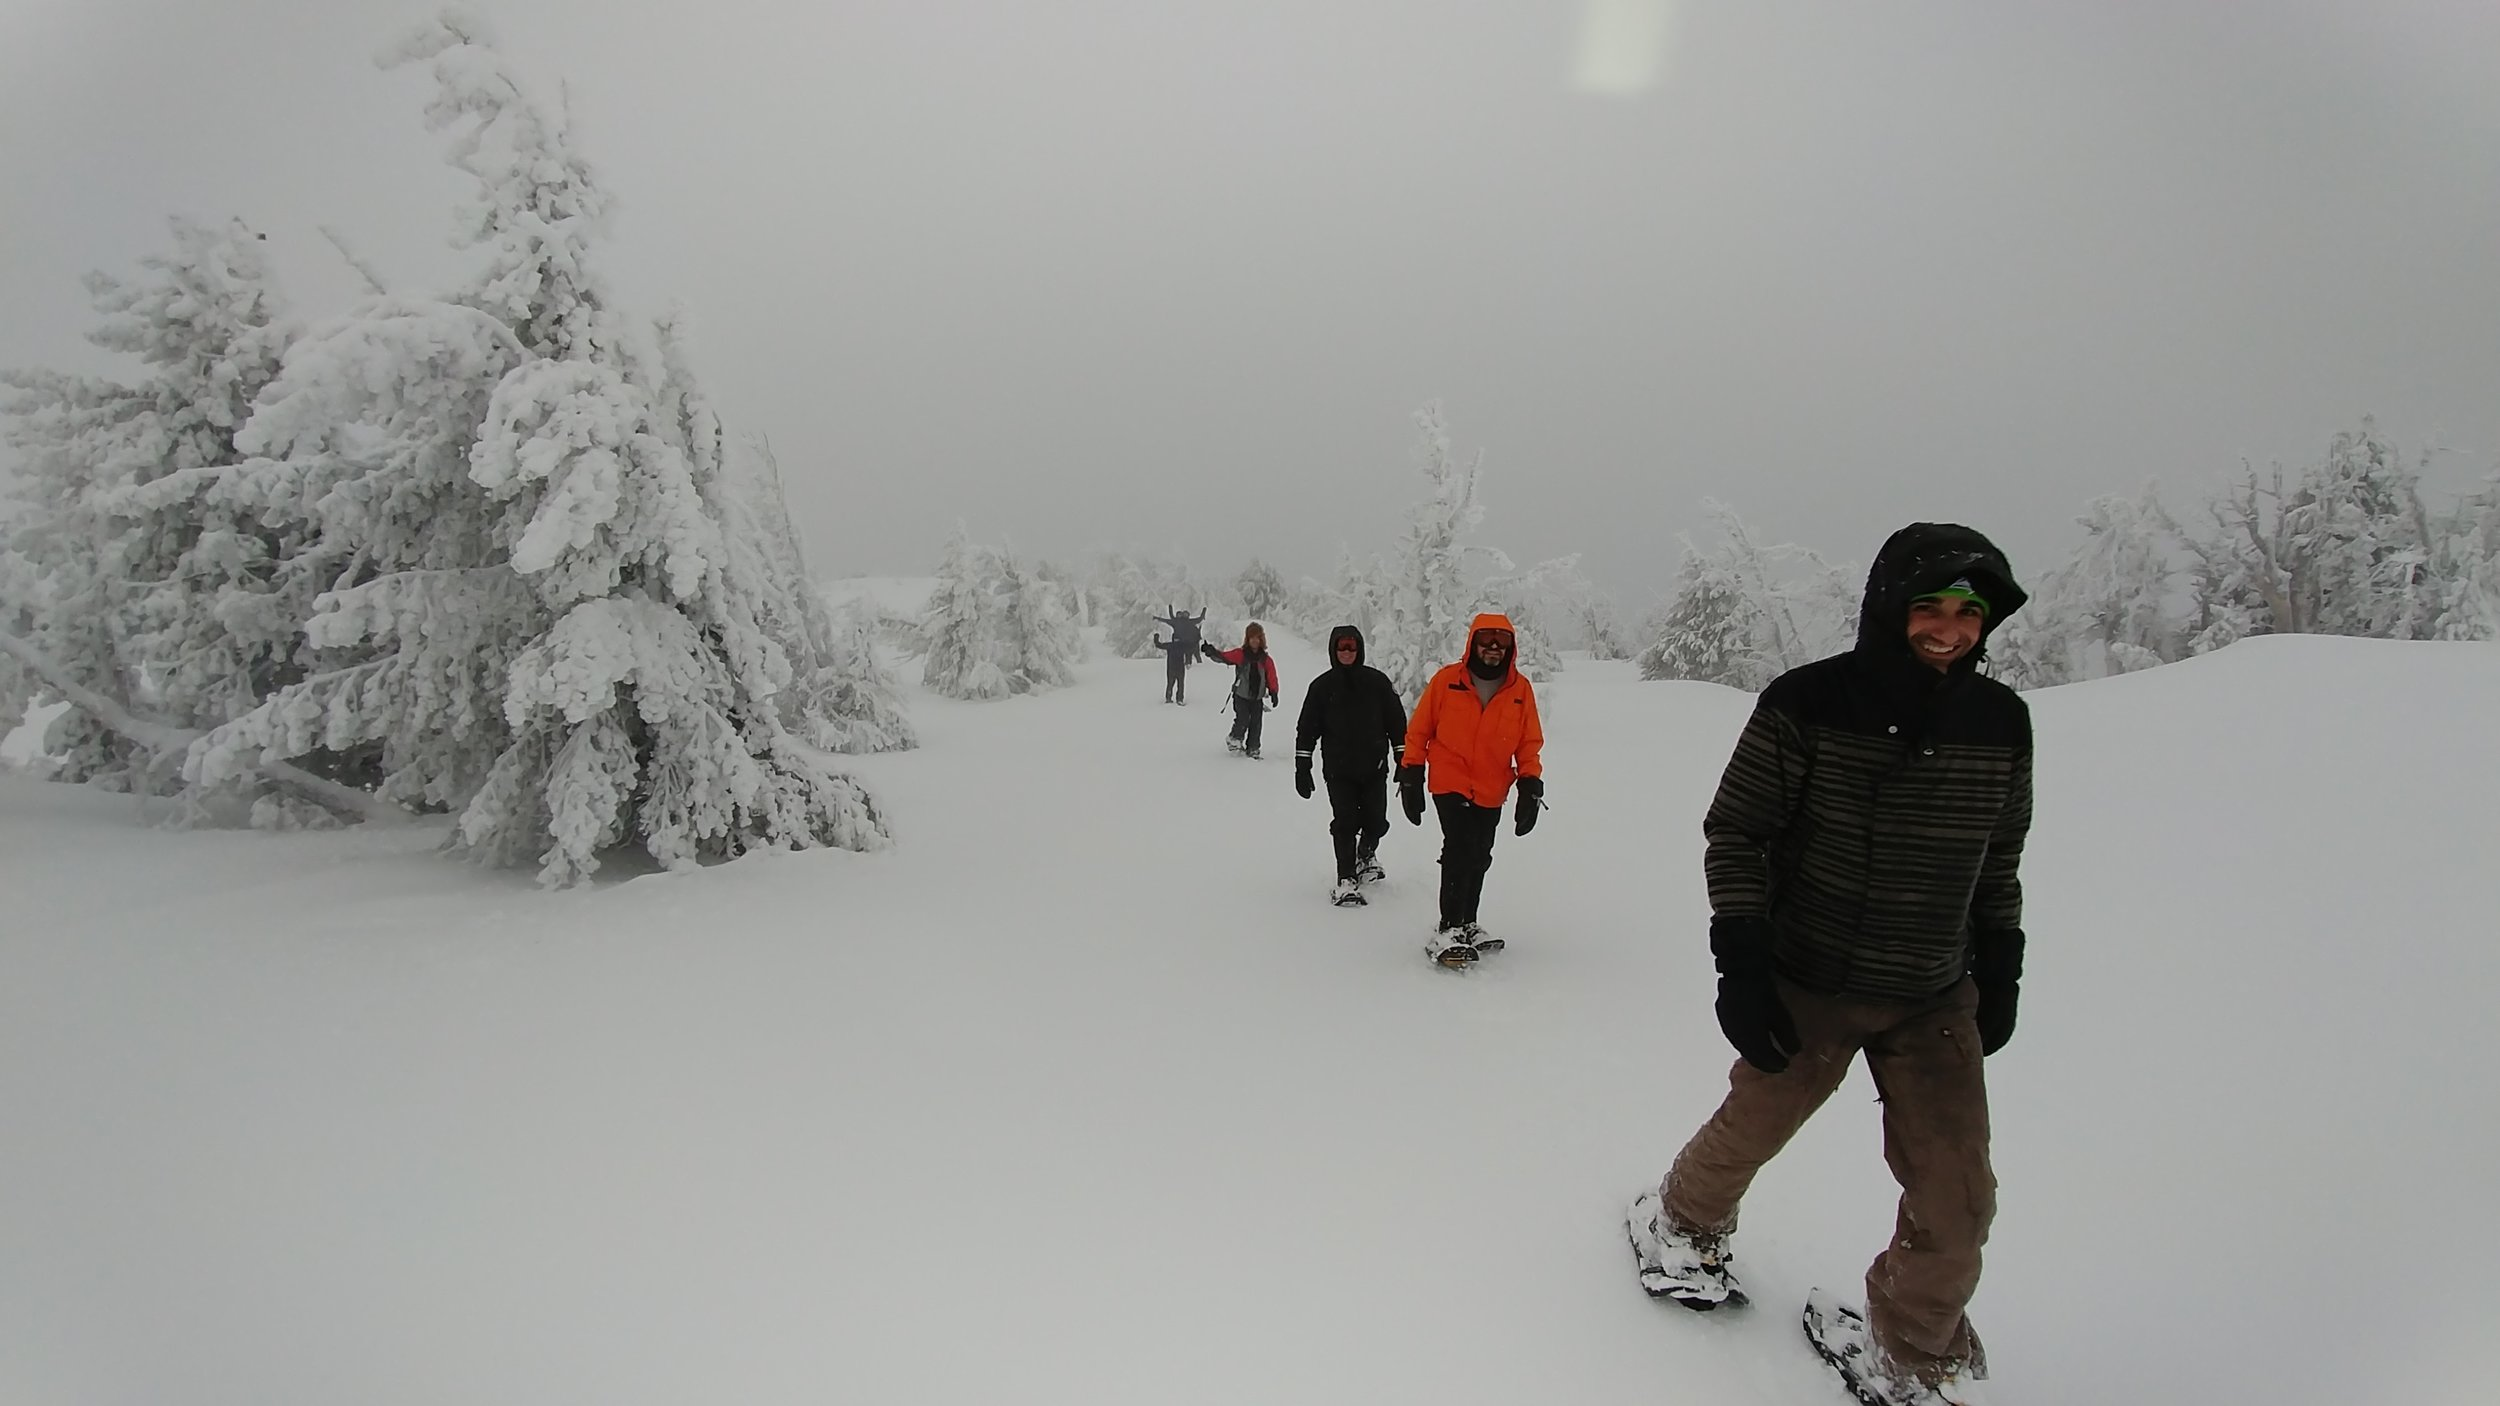 Snowshoeing to the summit - all smiles.